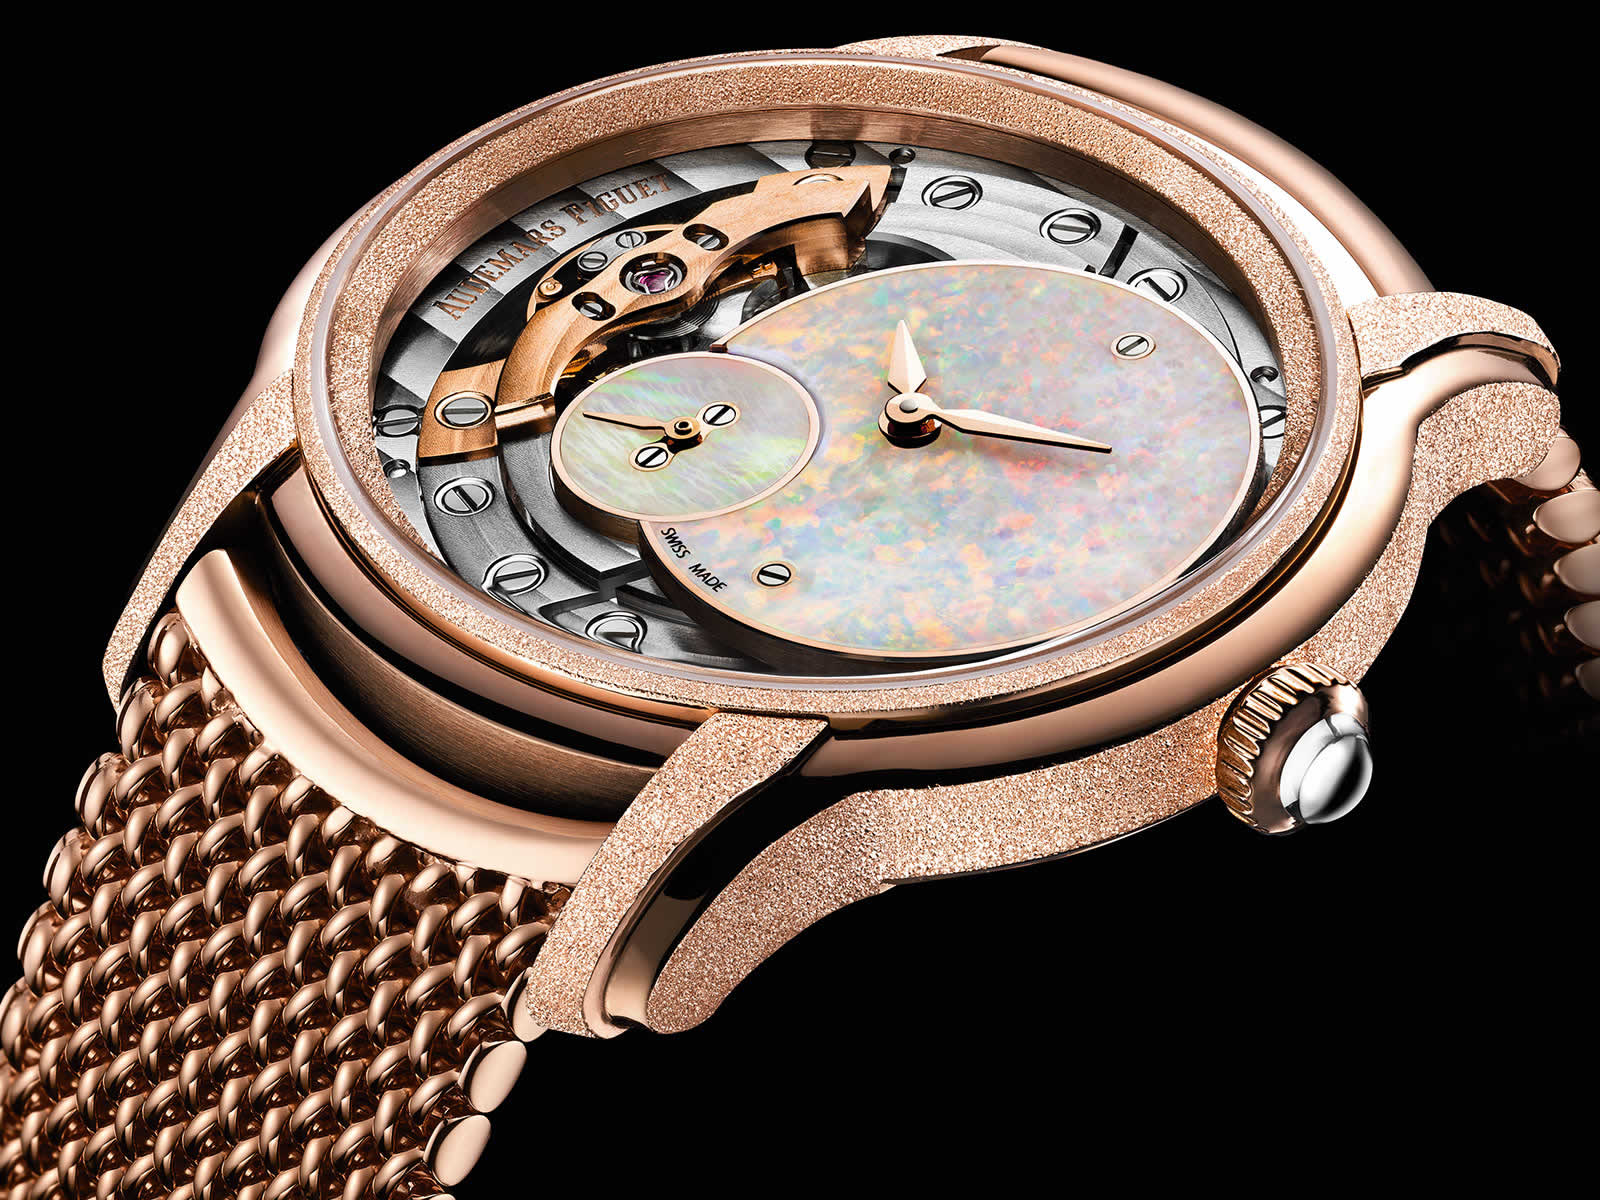 Audemars-Piguet-Frosted-Gold-Opal-Dial-77244OR-GG-1272OR-01_2-Closeup-Original-Sihh2018.jpg